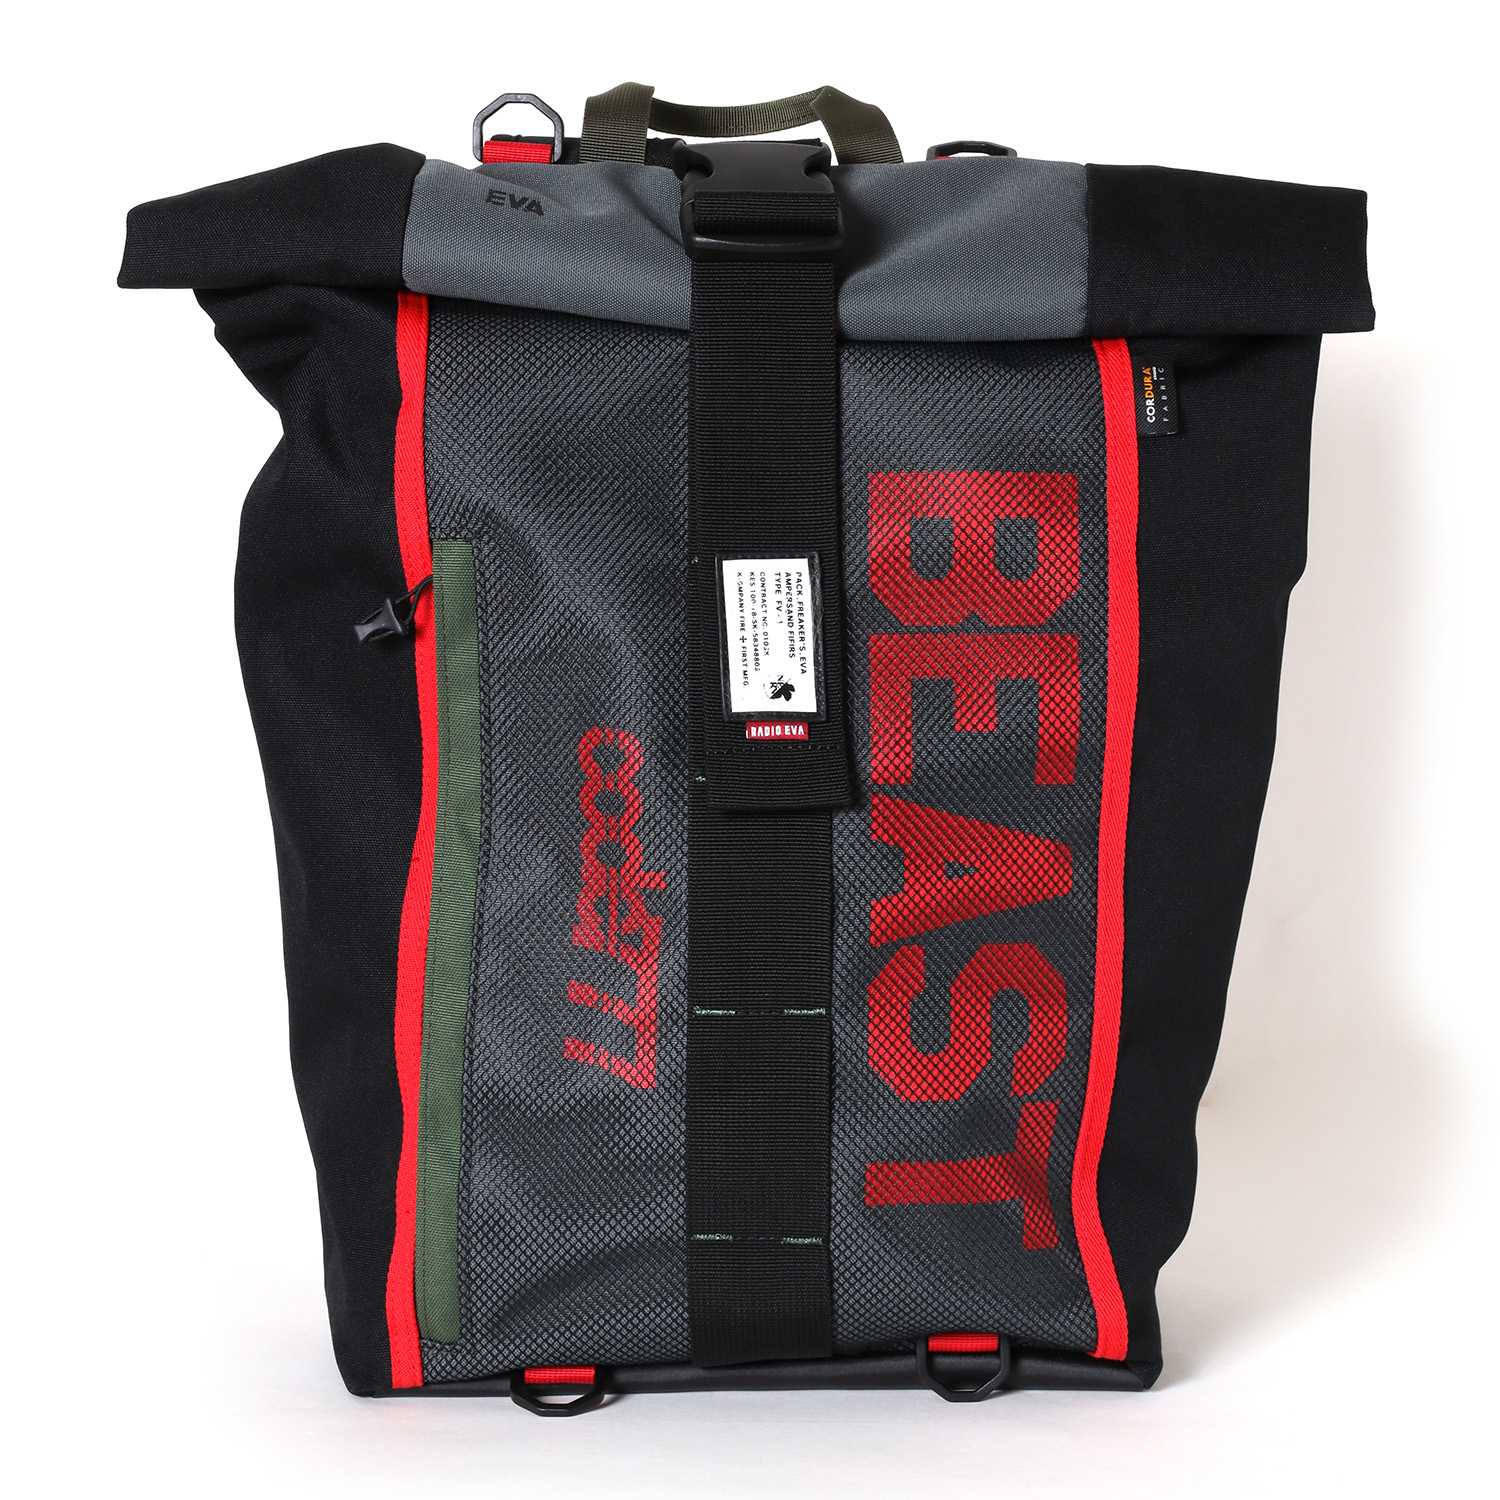 EVANGELION ROLL BACK PACK by FIRE FIRST (THE BEAST MODEL)